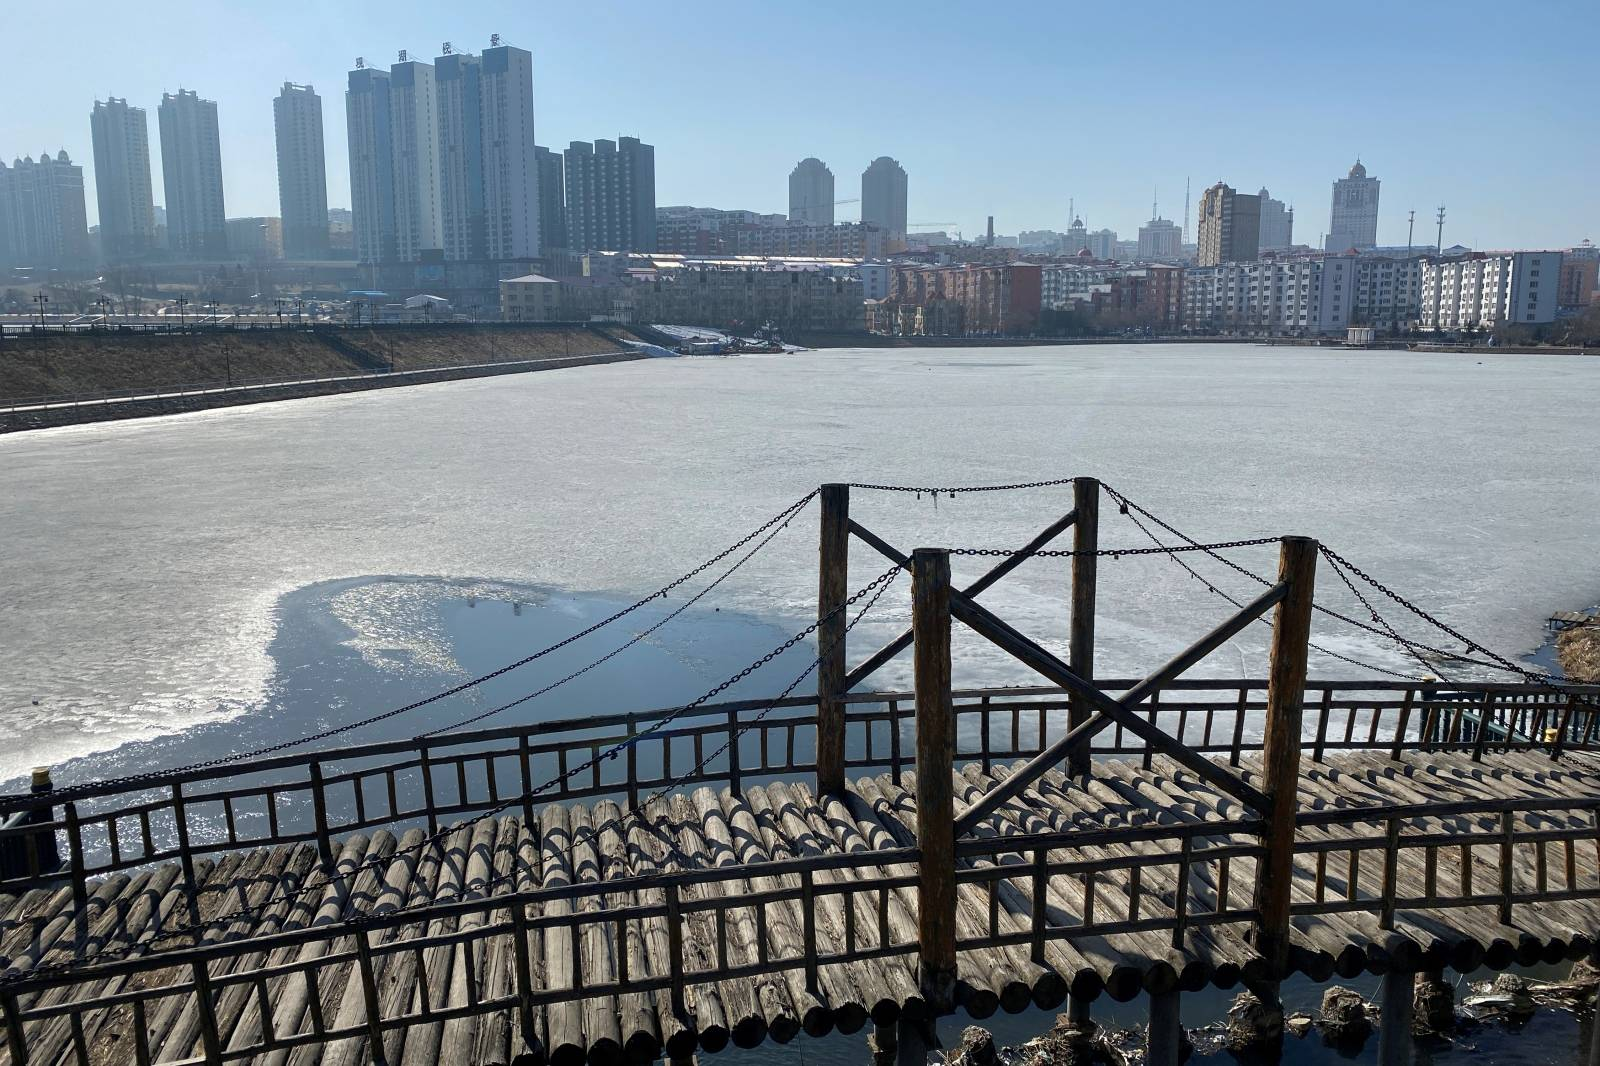 Residential buildings are seen near a river in Suifenhe, a city of Heilongjiang province on the border with Russia, as the spread of the novel coronavirus disease (COVID-19) continues in the country